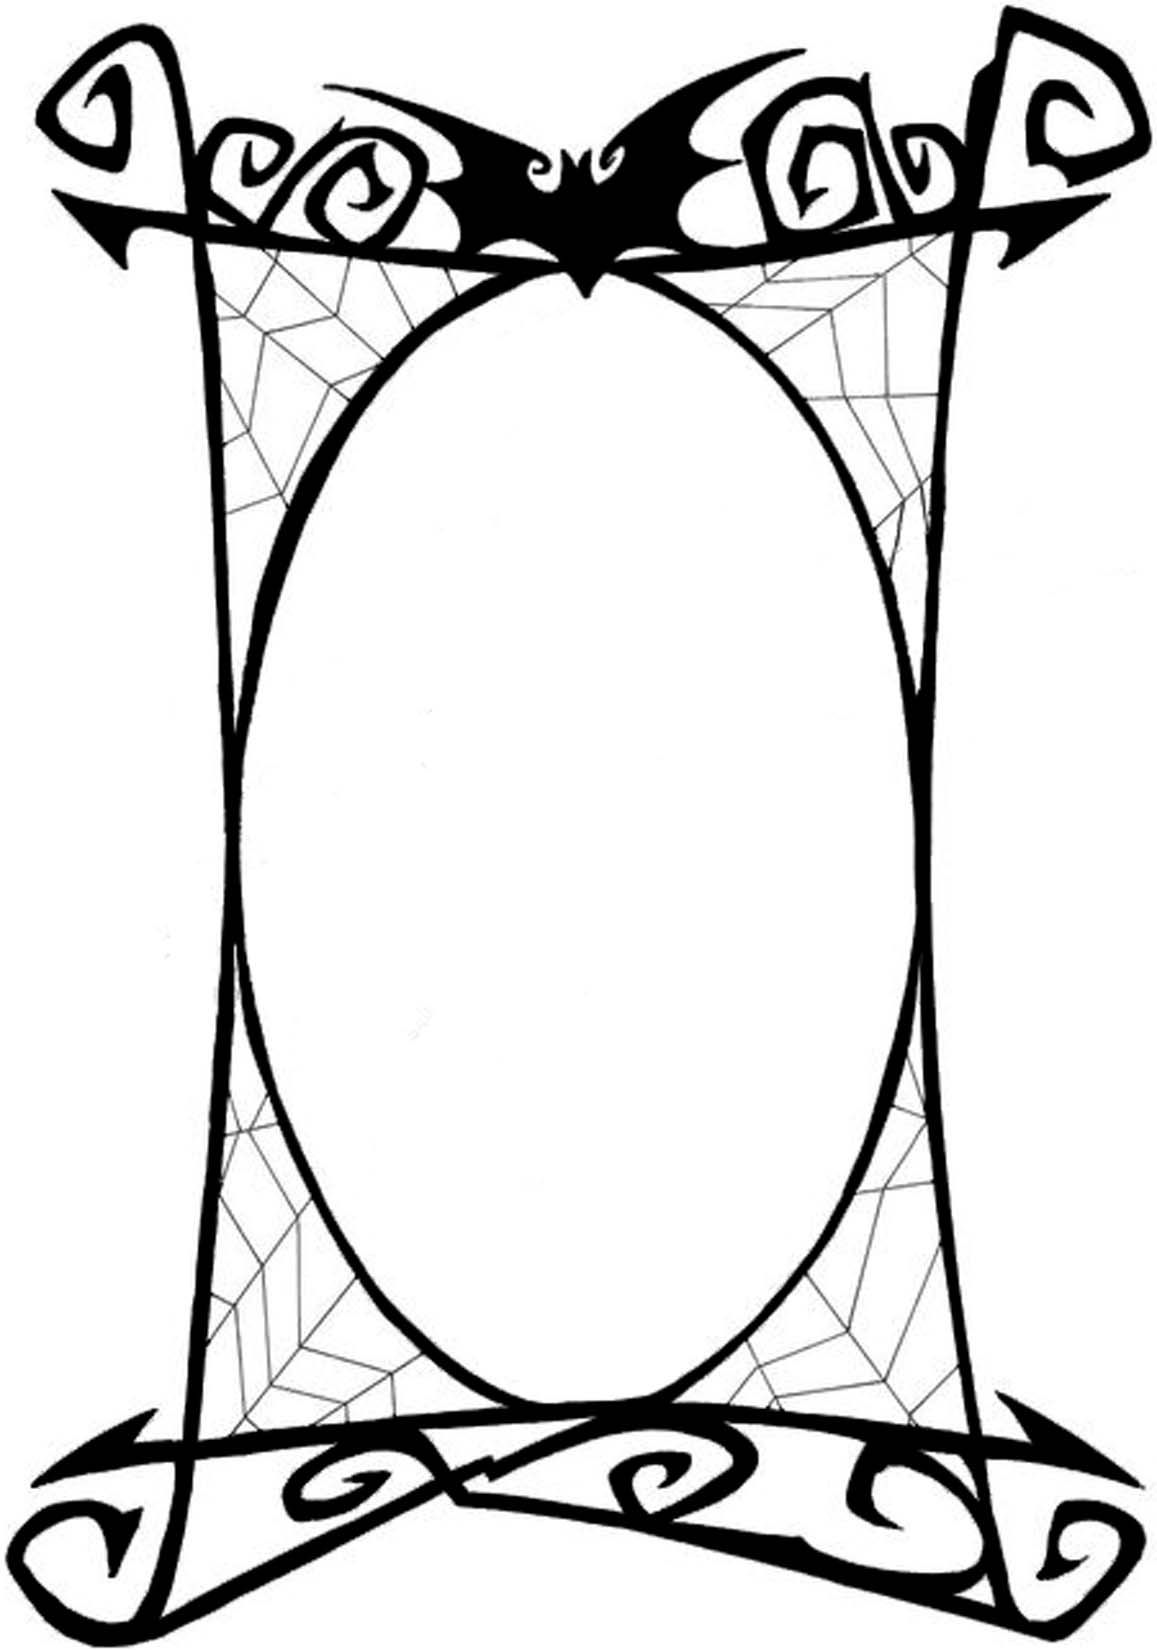 Pin By 88694978 On Nightmare Before Christmas Nightmare Before Christmas Decorations Nightmare Before Christmas Halloween Christmas Coloring Pages